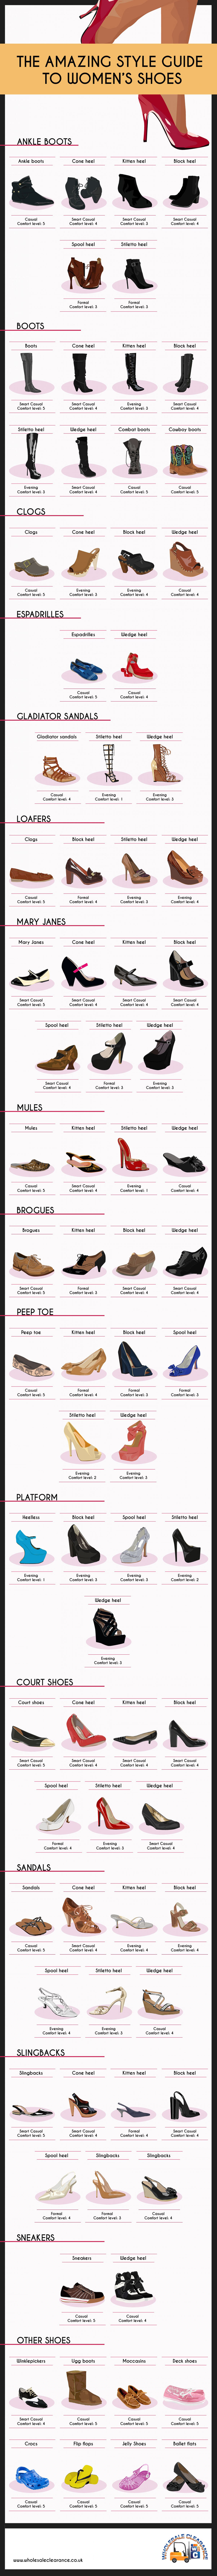 Comfort Level Guide to Women Shoes - Fashion Infographic